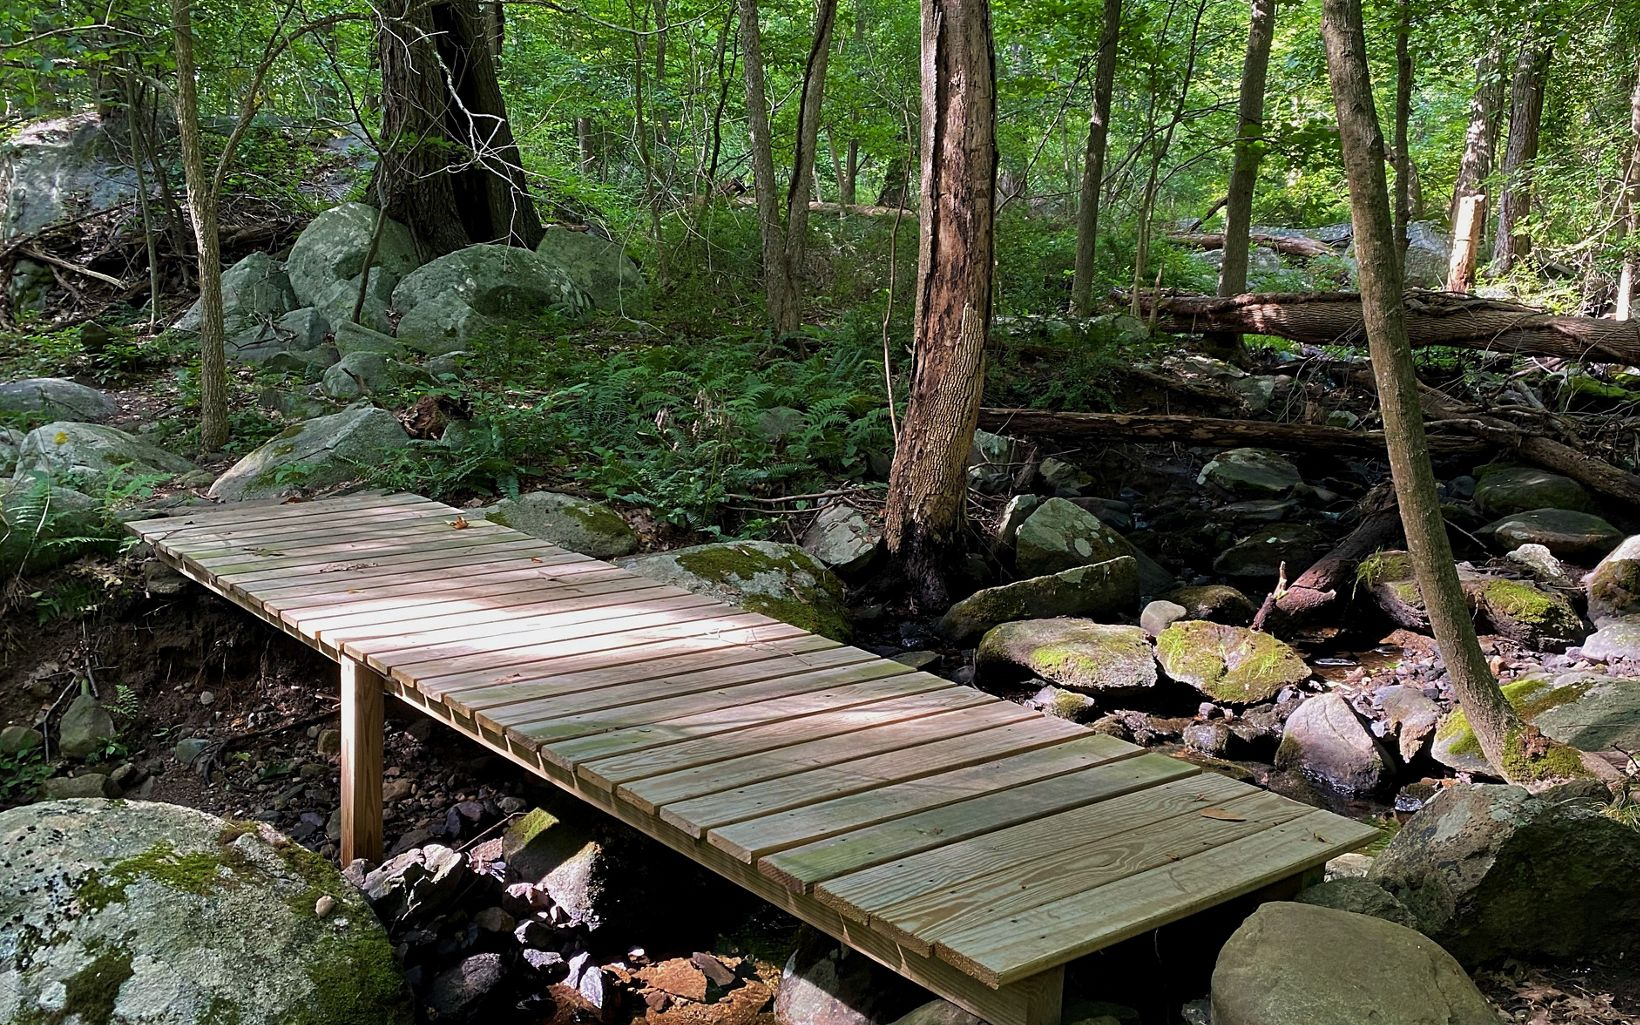 A short wooden footbridge crosses a dry streambed, as seen from above.